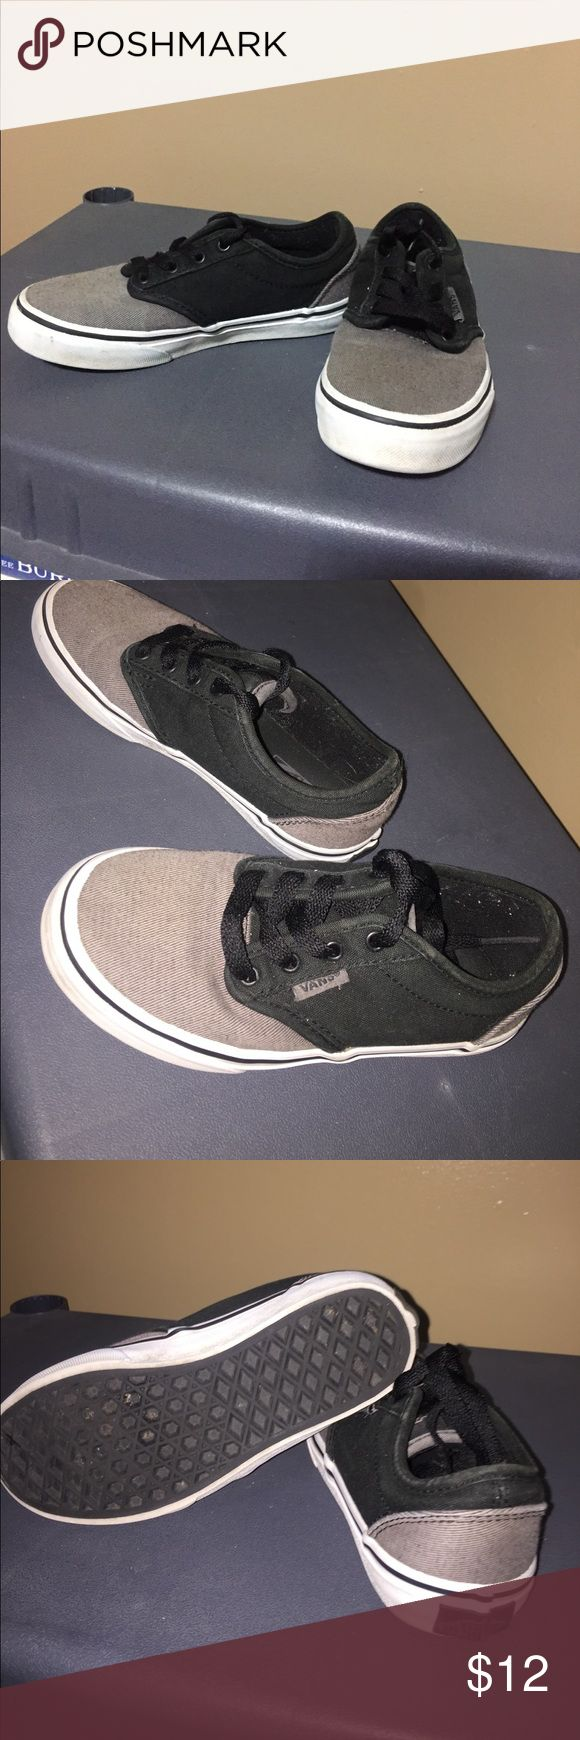 Vans for little boys. Size 13 Gray and black size 13 in boy Van shoes. They are in good to fair condition depends on how you want to see it. Vans Shoes Sneakers